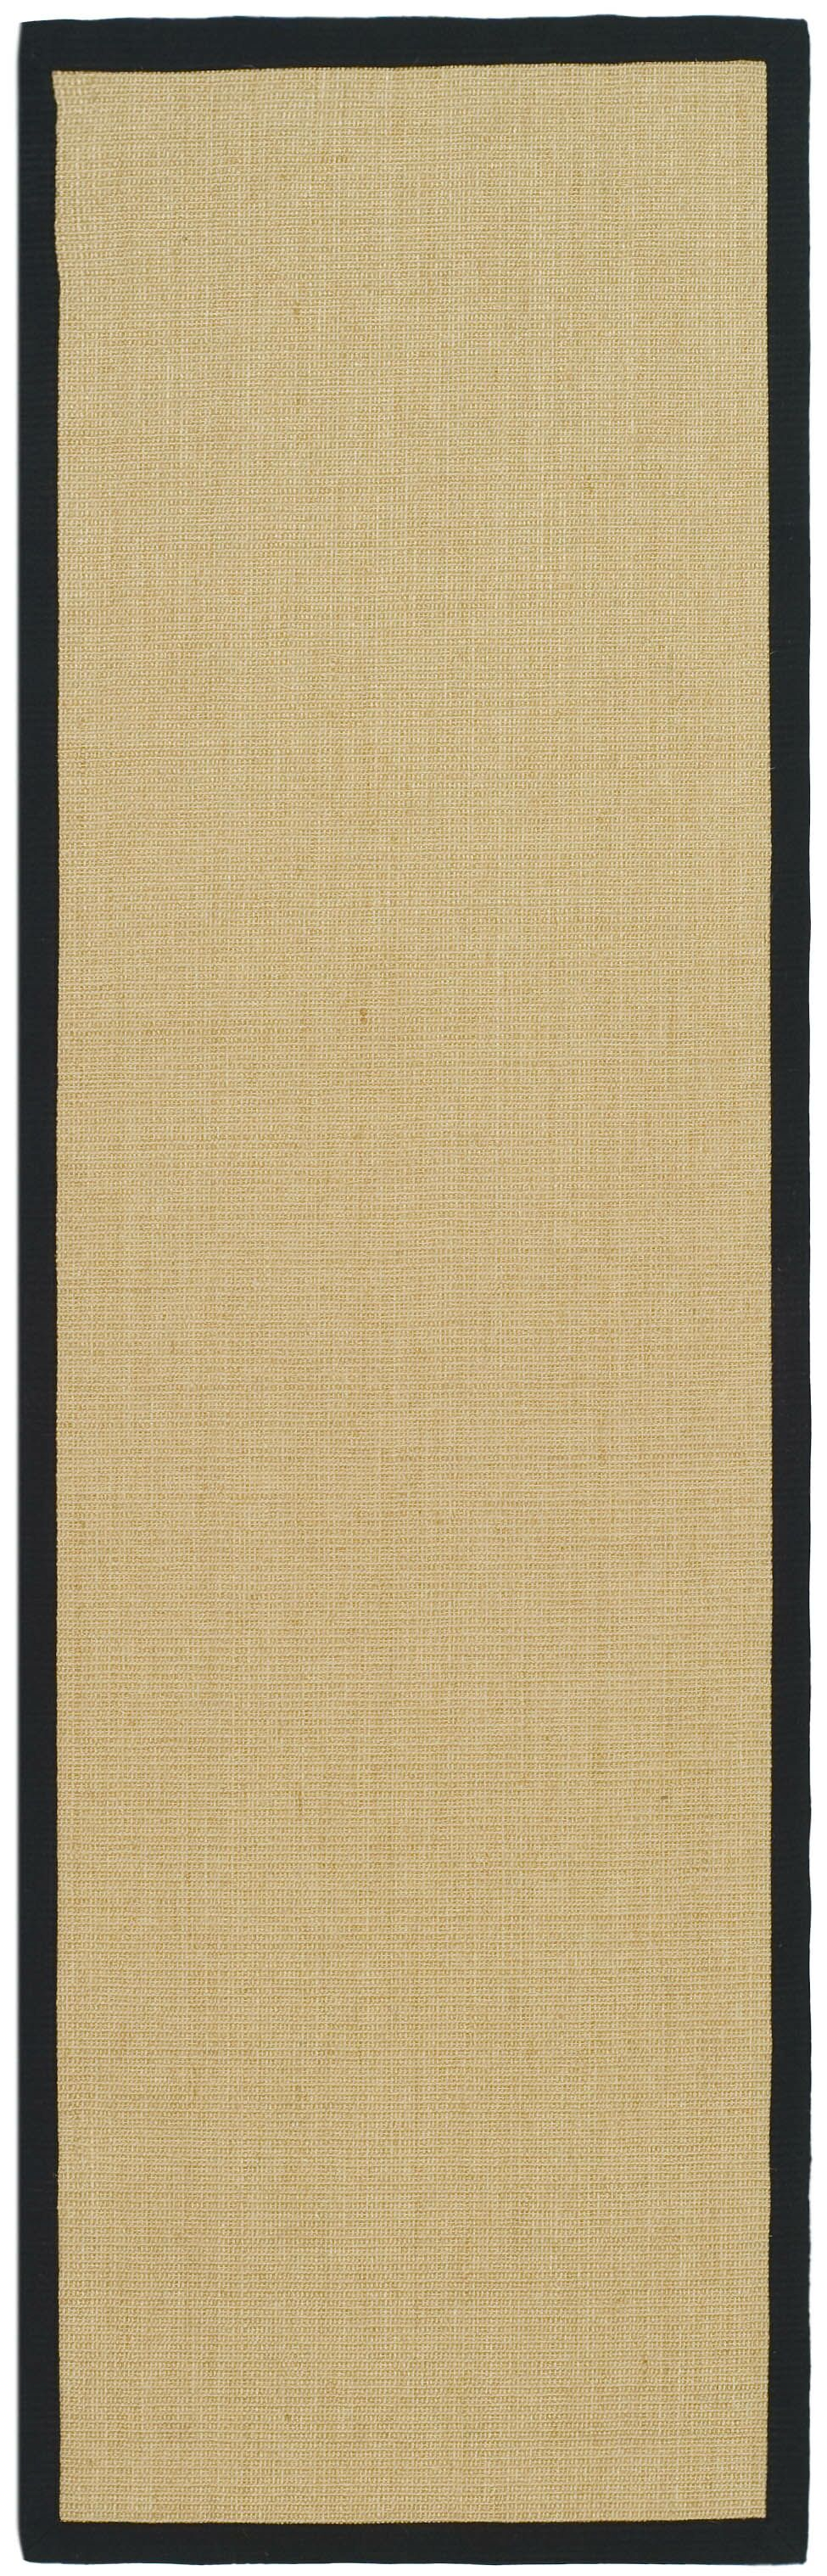 Greene Contemporary Sisal Brown Area Rug Rug Size: Runner 2'6